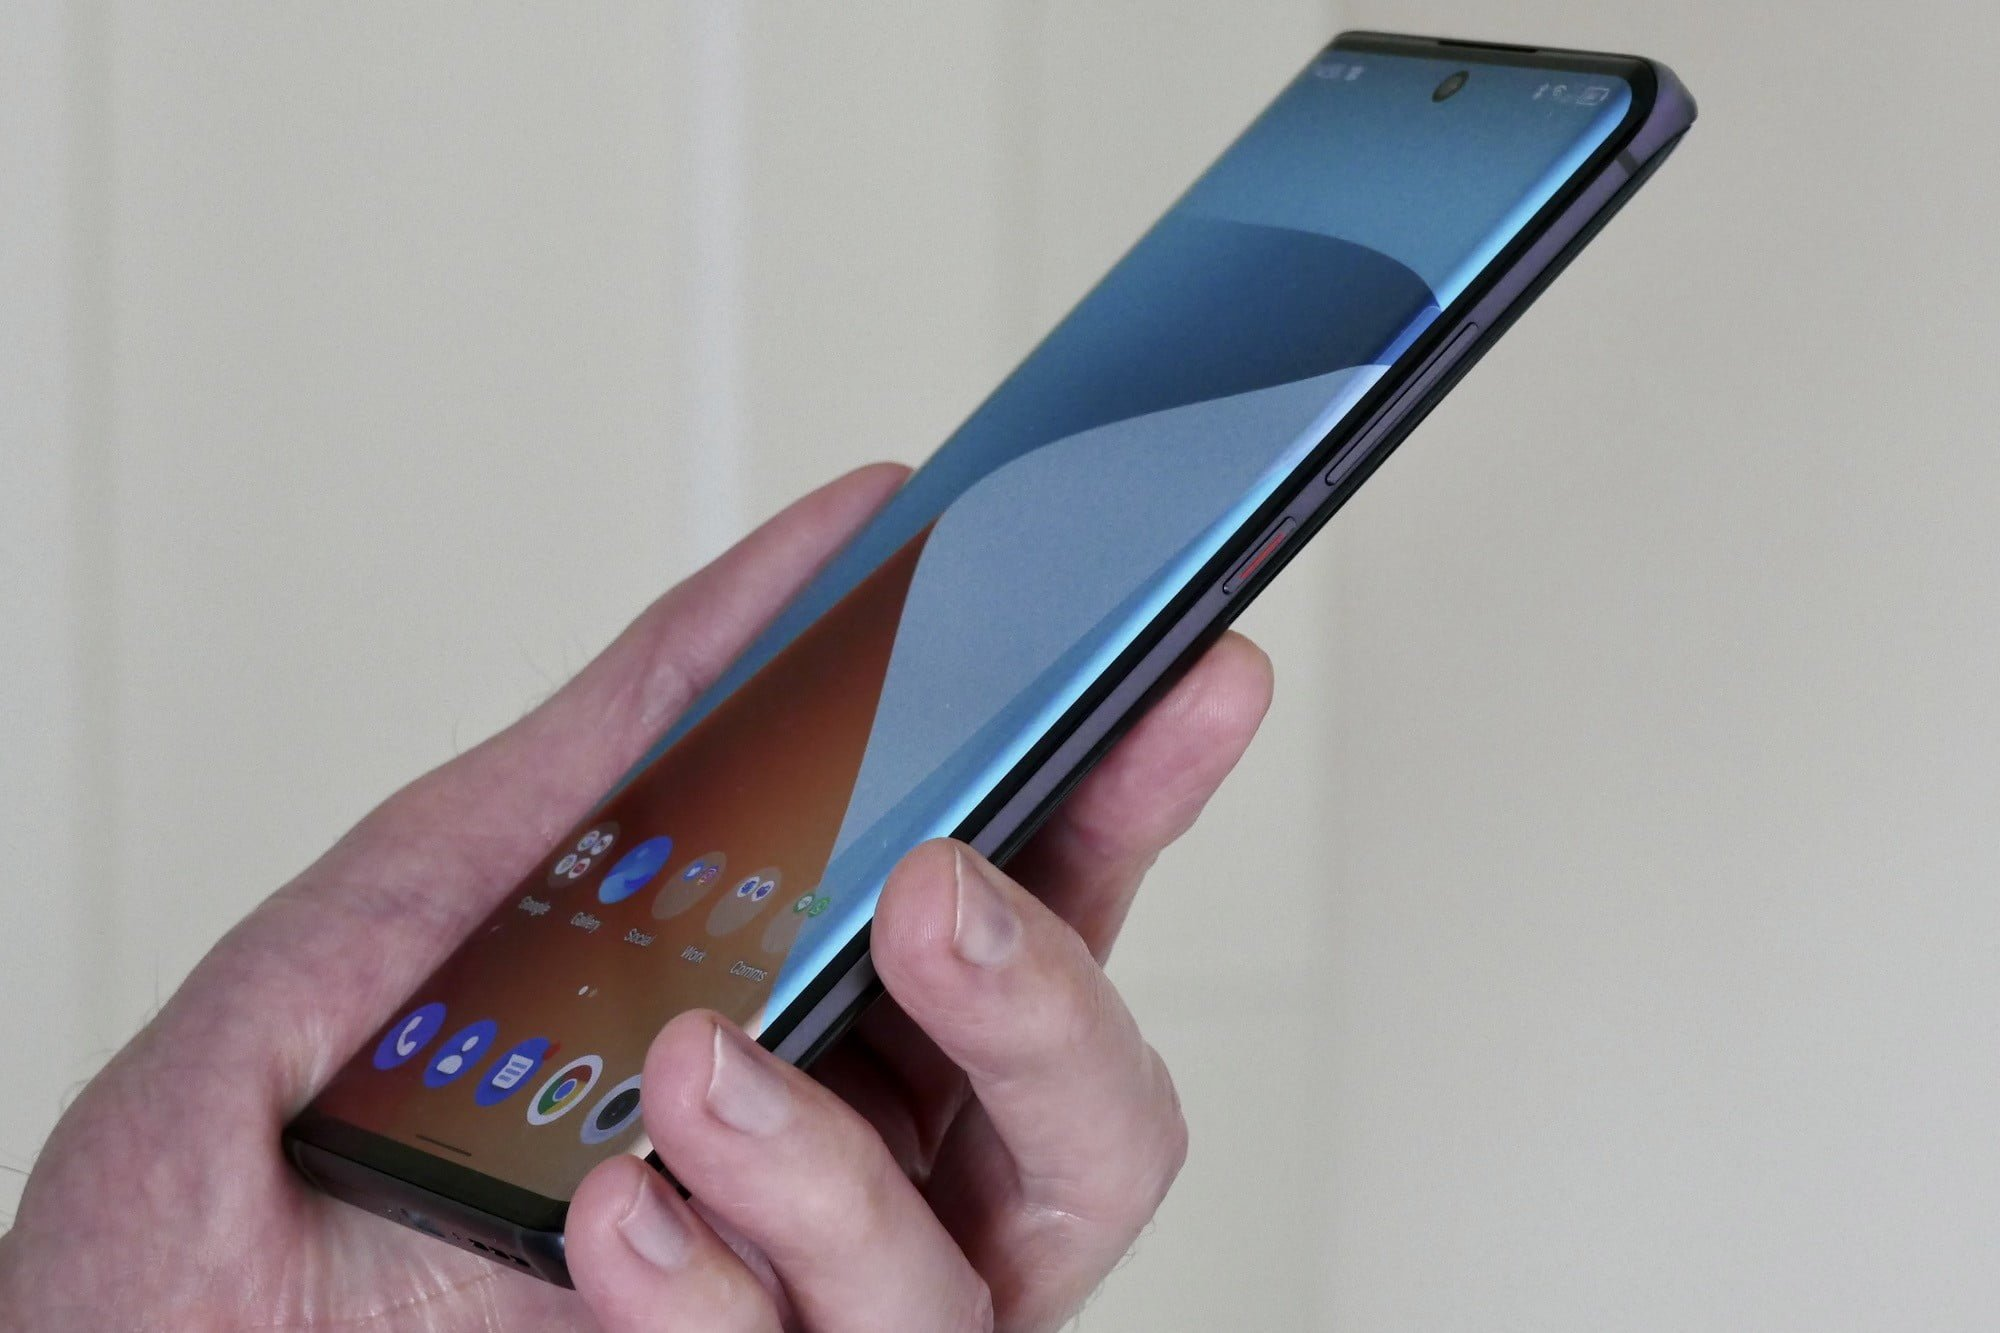 The curve on the TCL 20 Pro 5G's screen.